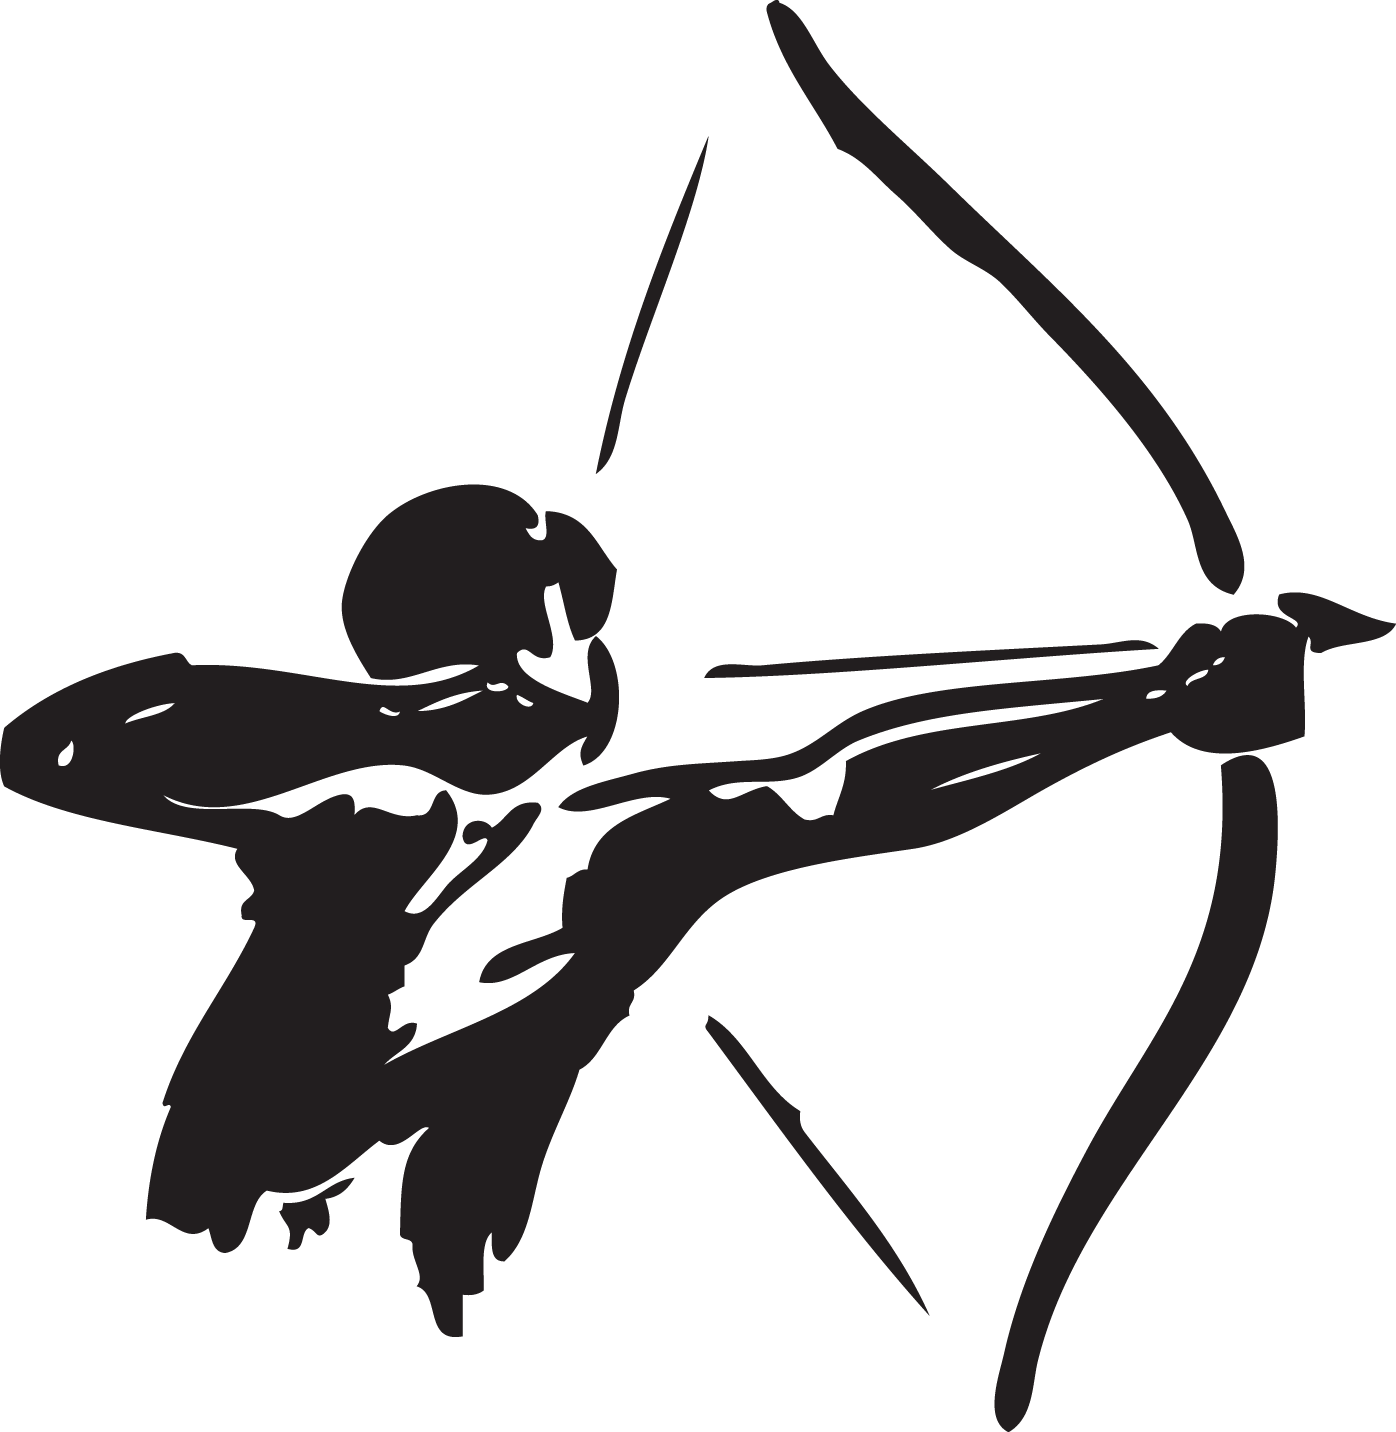 Hunter clipart archery. Bow and arrow hunting